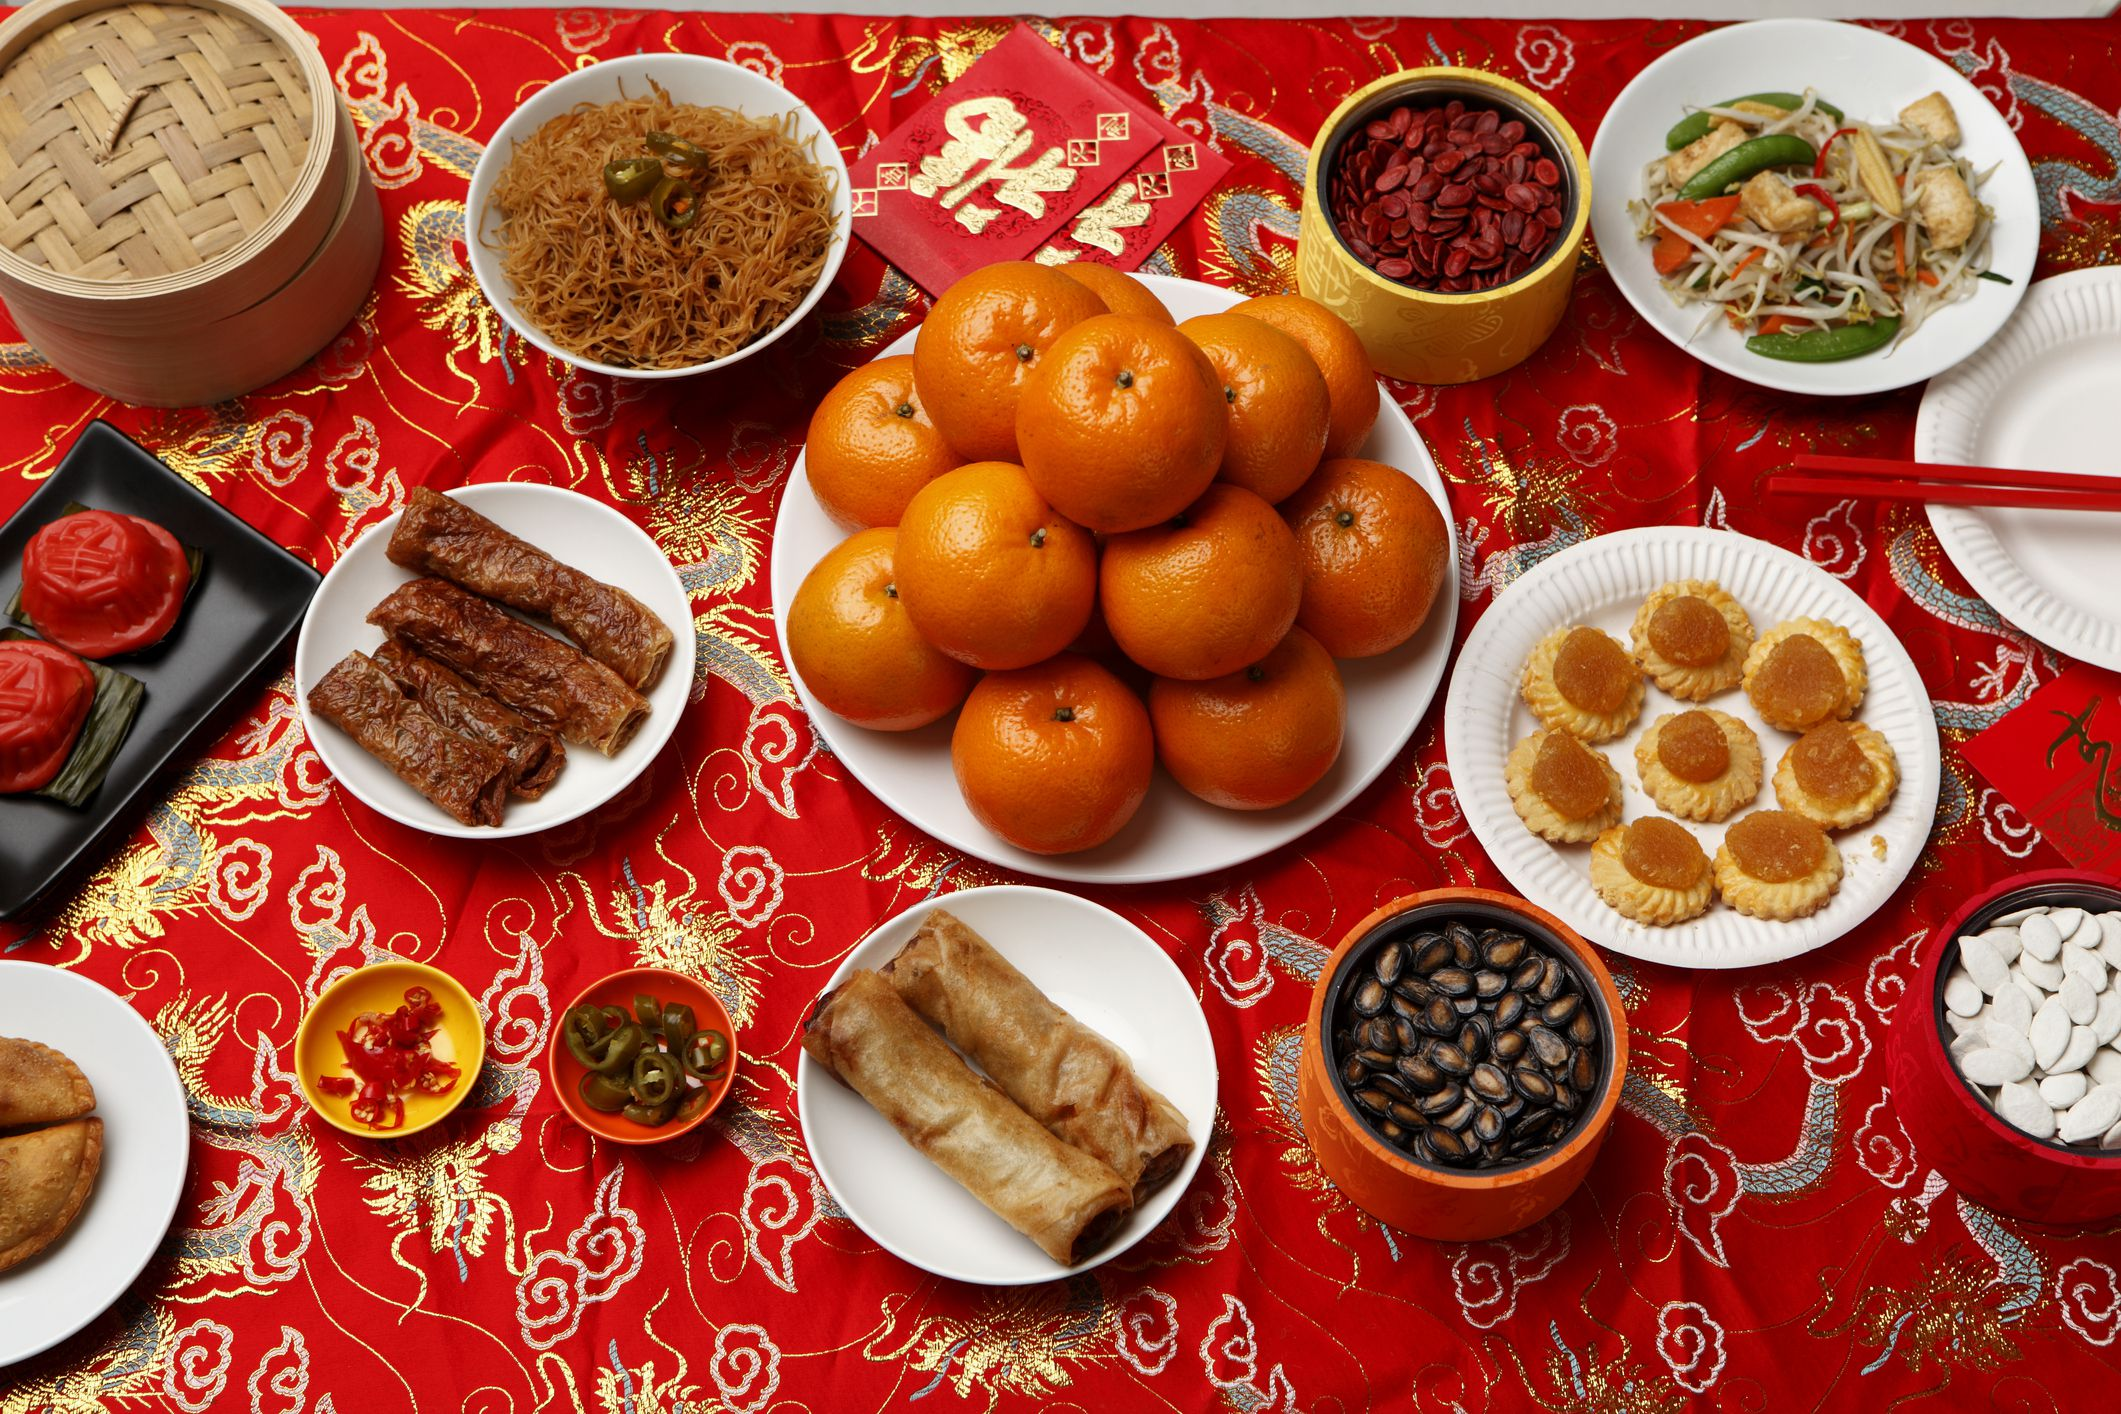 What Gifts To Give Your Hosts for Chinese New Year